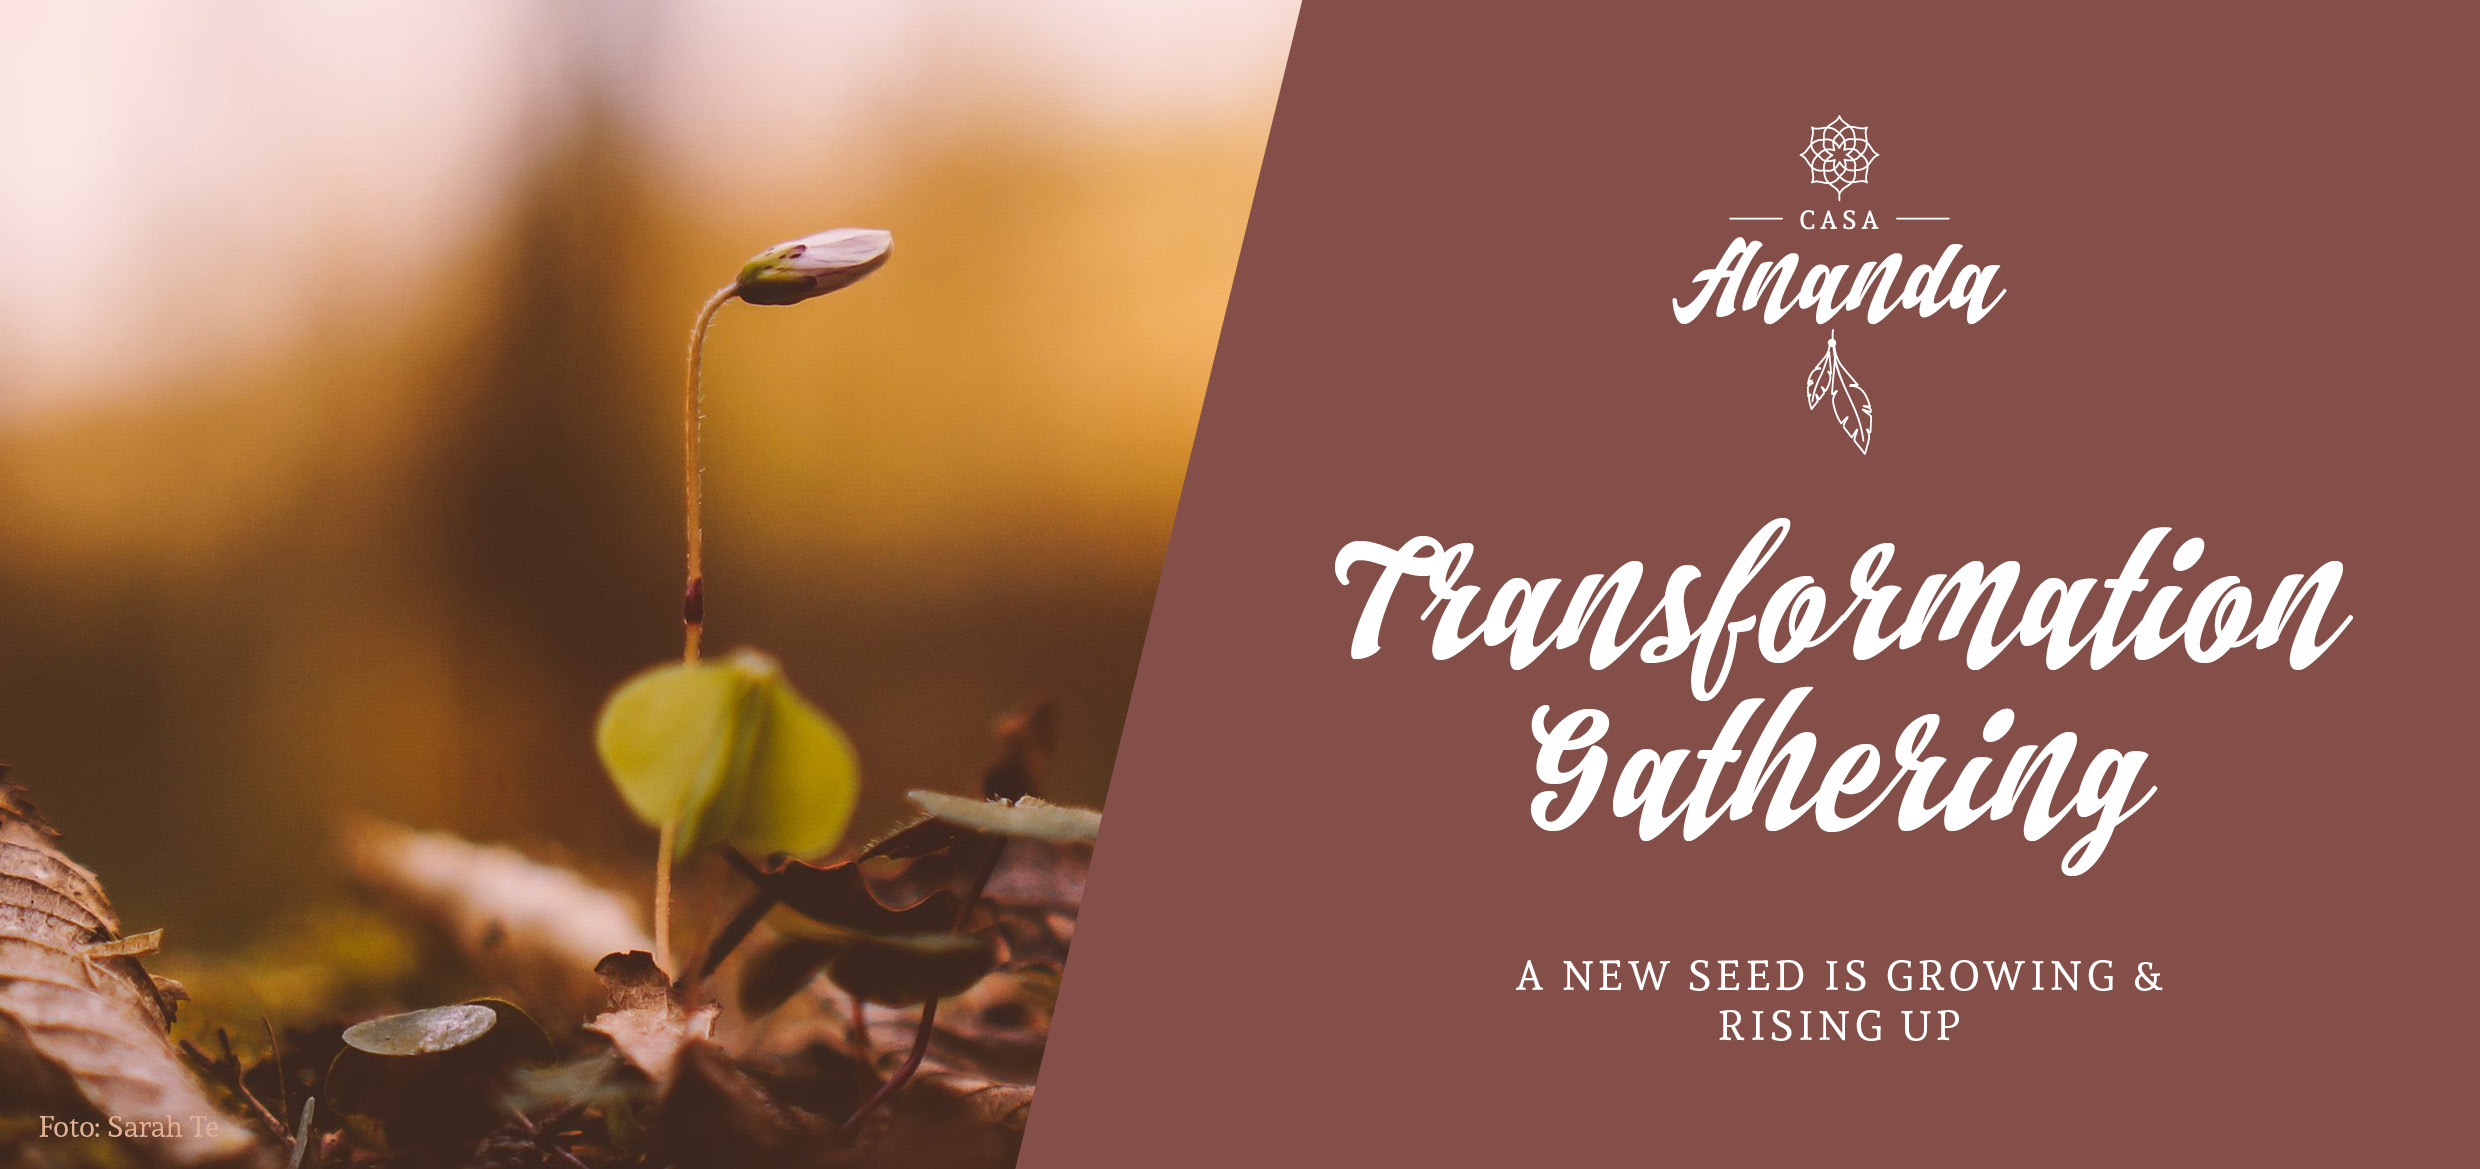 Transformation Gathering - a new seed